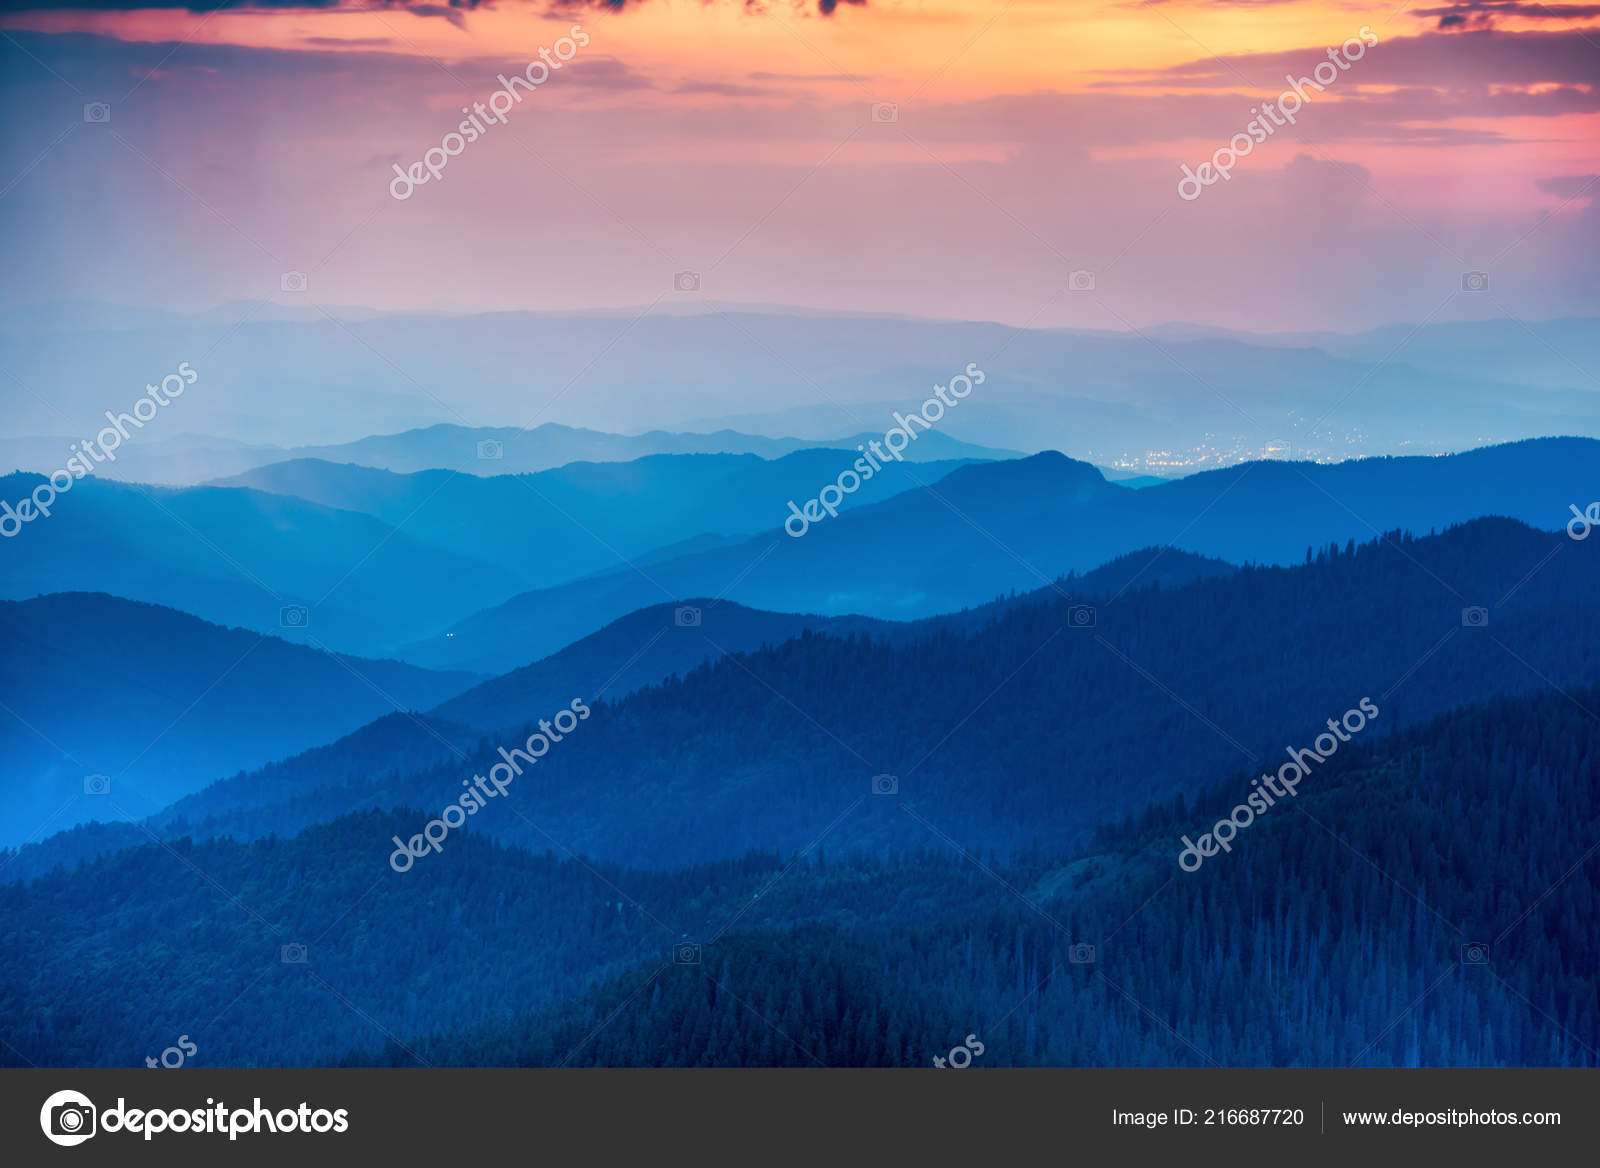 Wallpapers Sunset Mountains Hd Sunset Mountains Hills